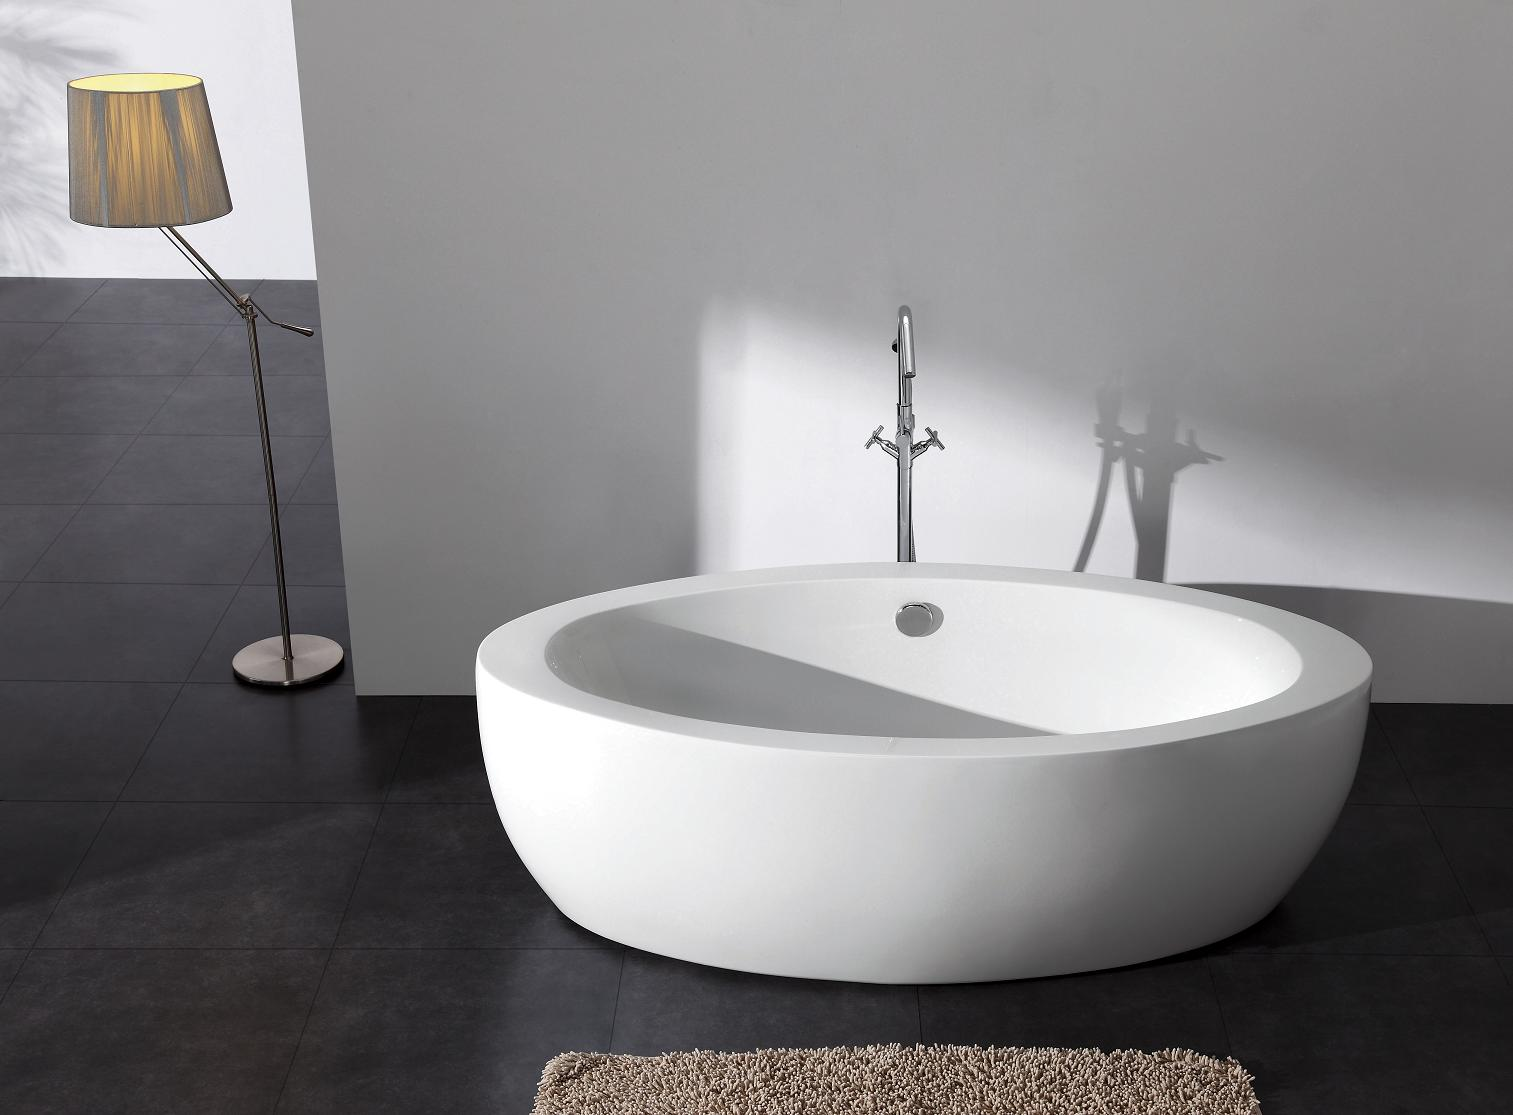 Brizio acrylic modern freestanding soaking bathtub 73 for Acrylic soaker tub